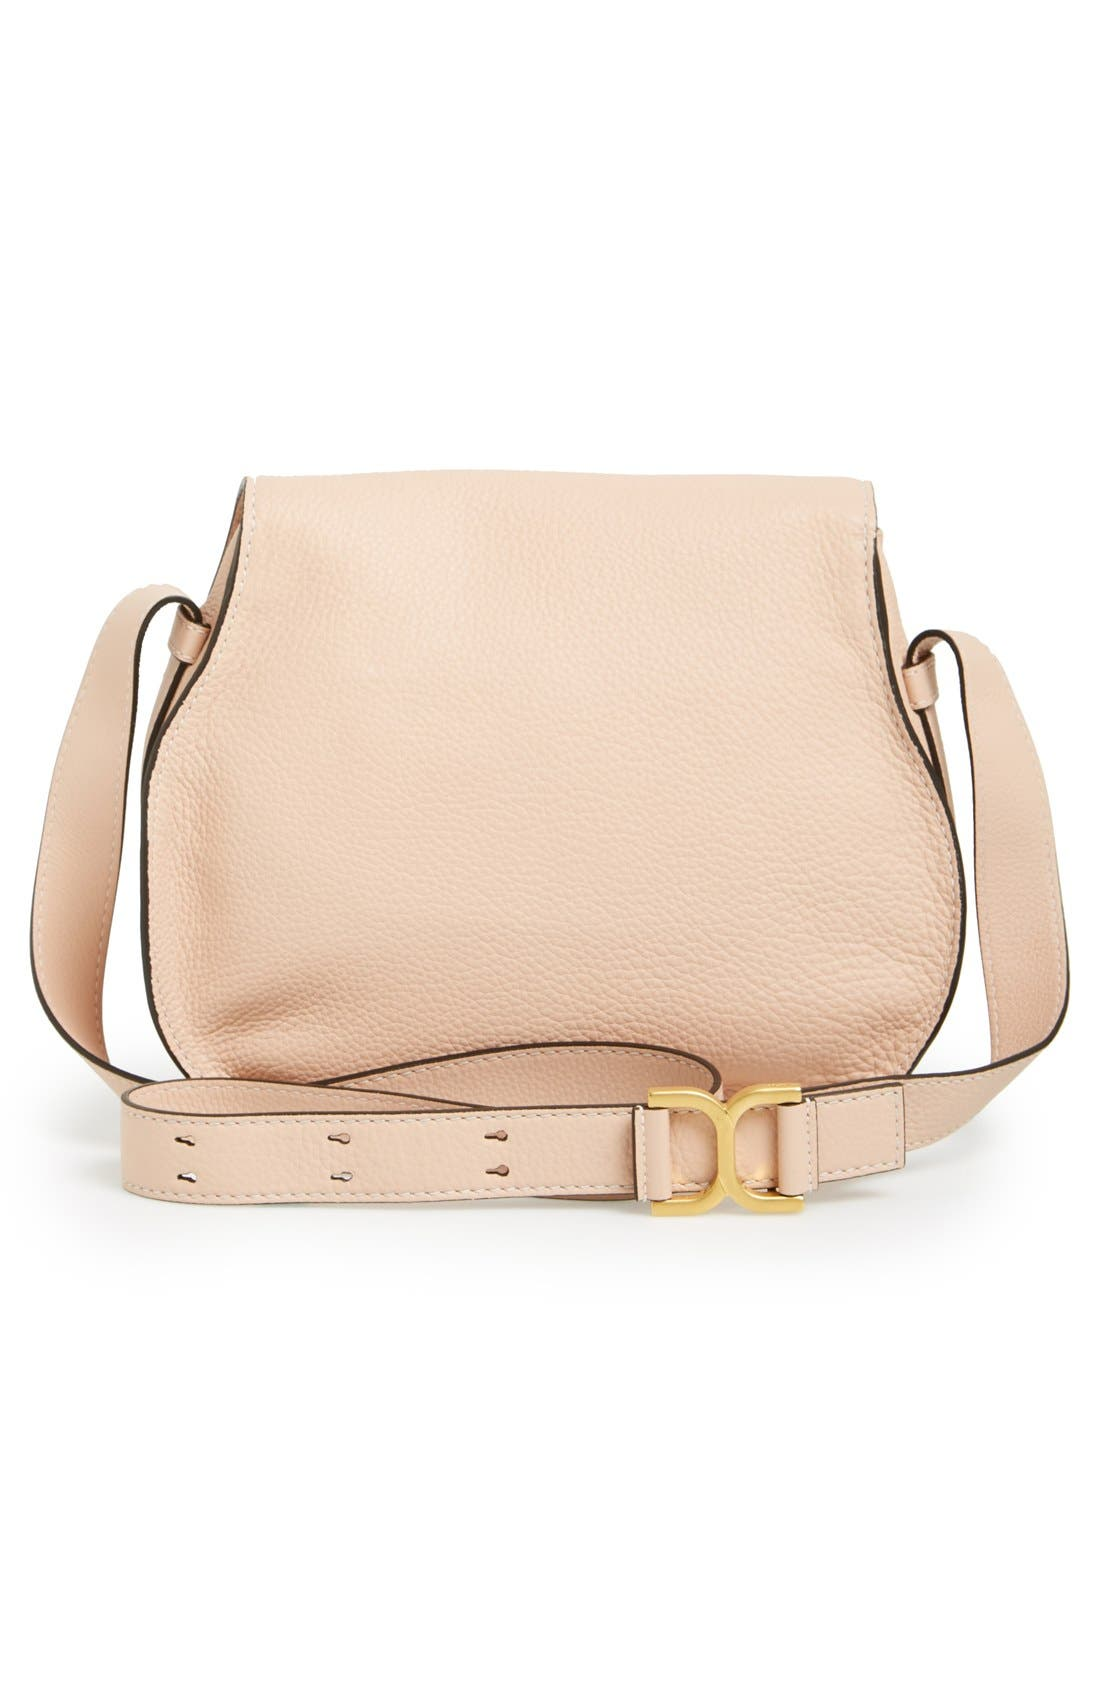 Alternate Image 3  - Chloé 'Marcie - Medium' Leather Crossbody Bag